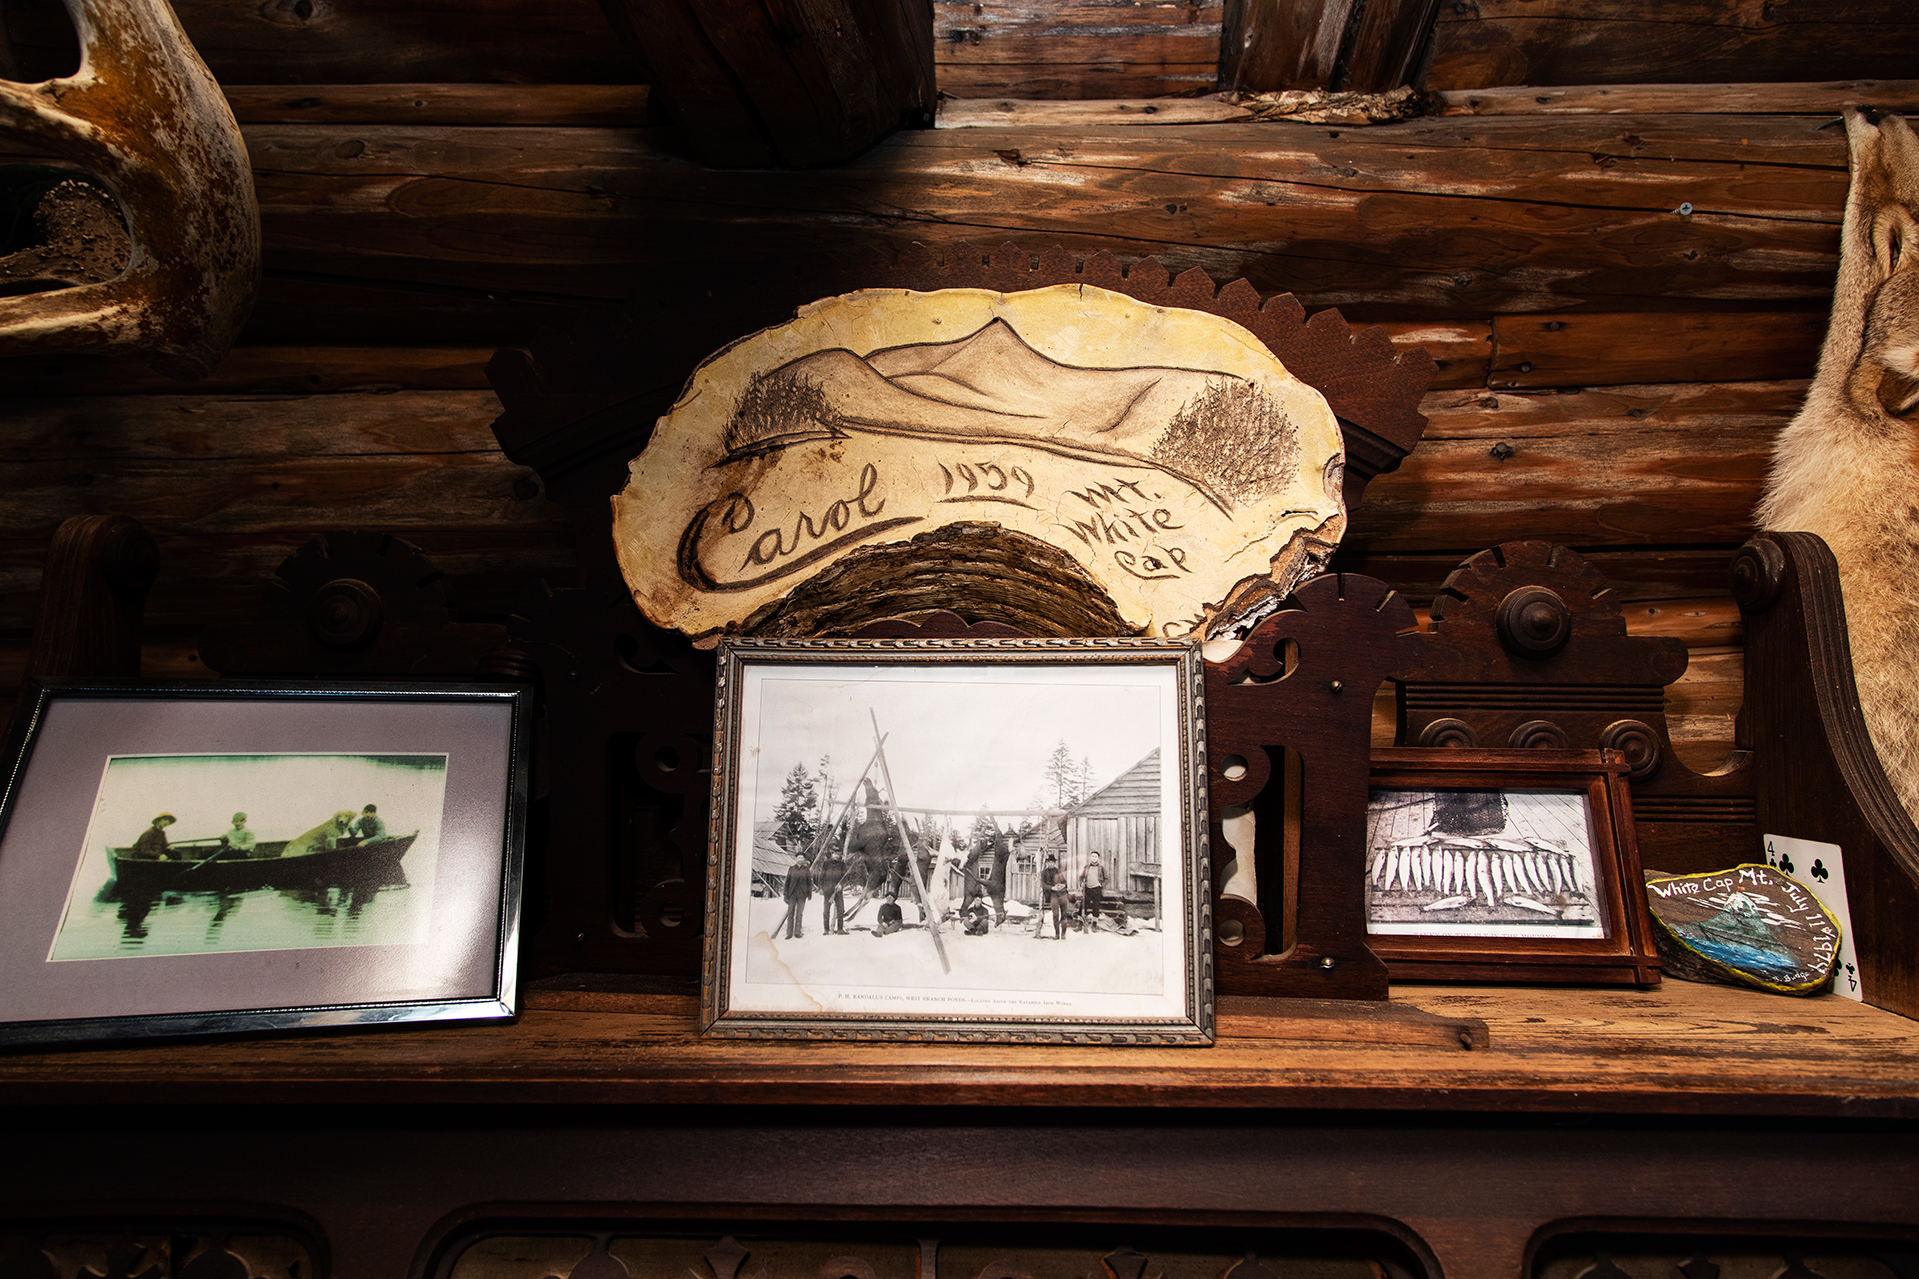 Vintage photos and memorabilia on display in the West Branch Pond Camps dining hall. (Theophil Syslo/Bates College)